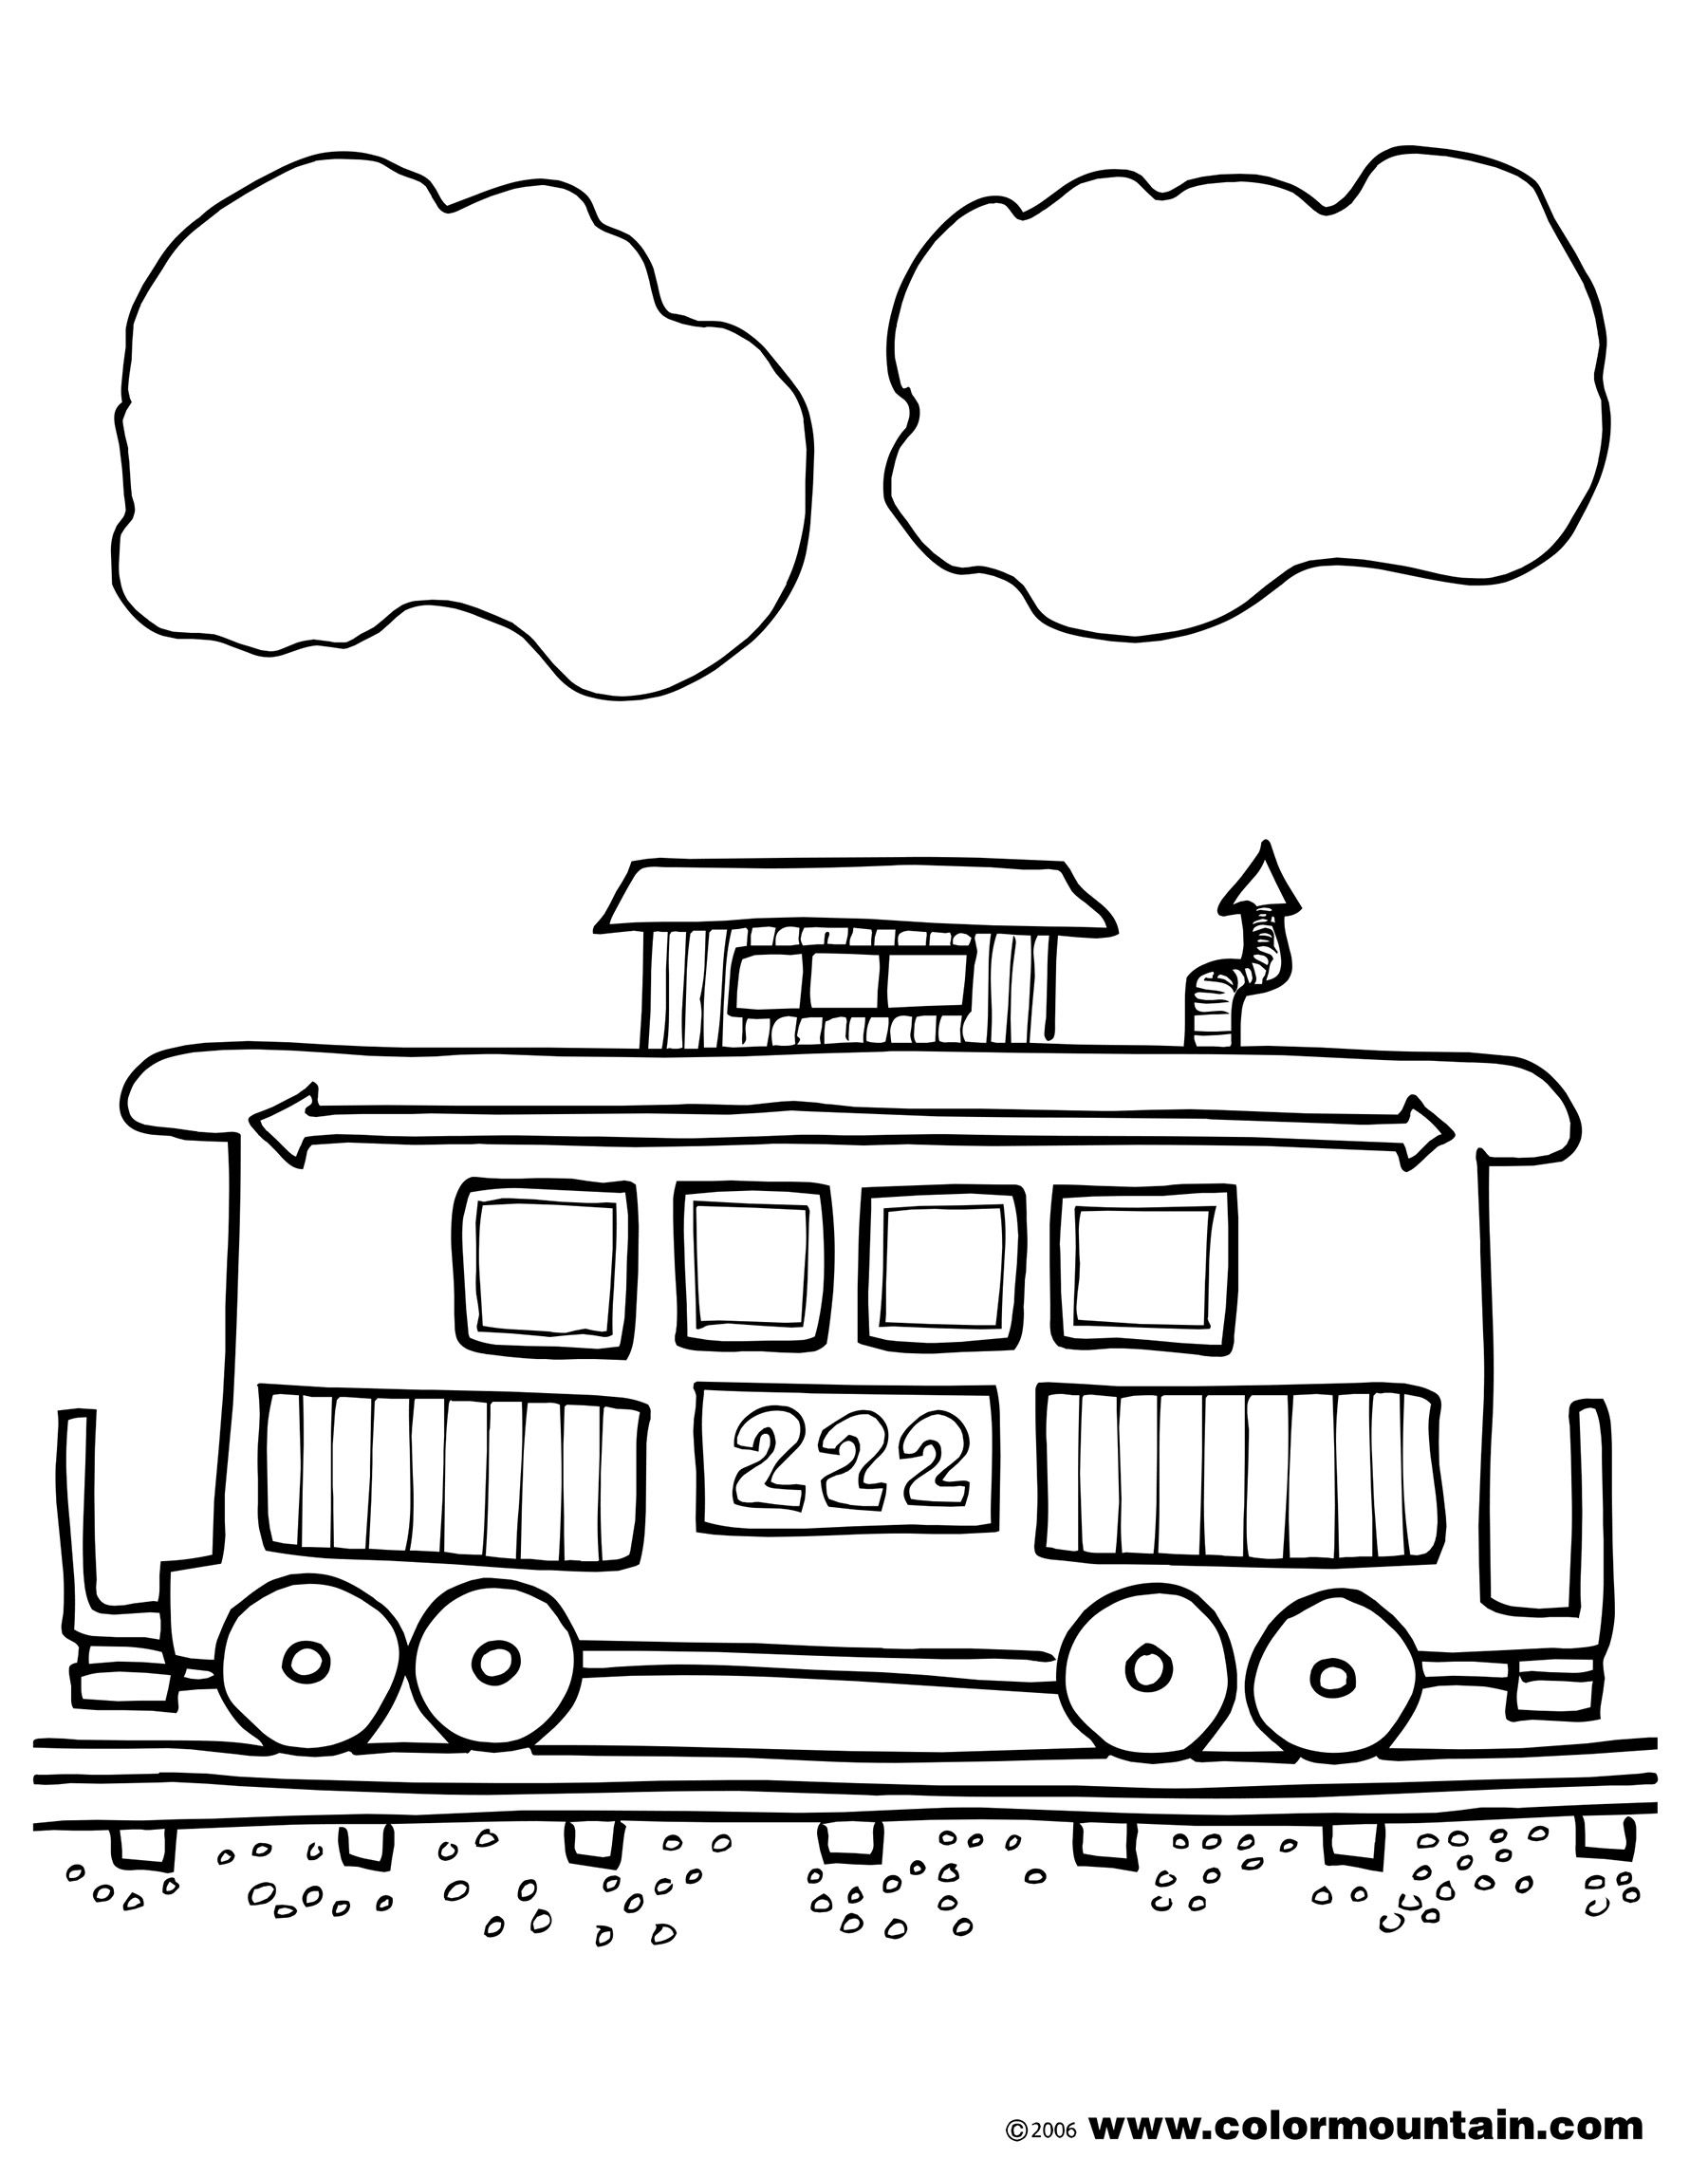 Coloring Pages Free Coloring Pages Train Coloring Pages